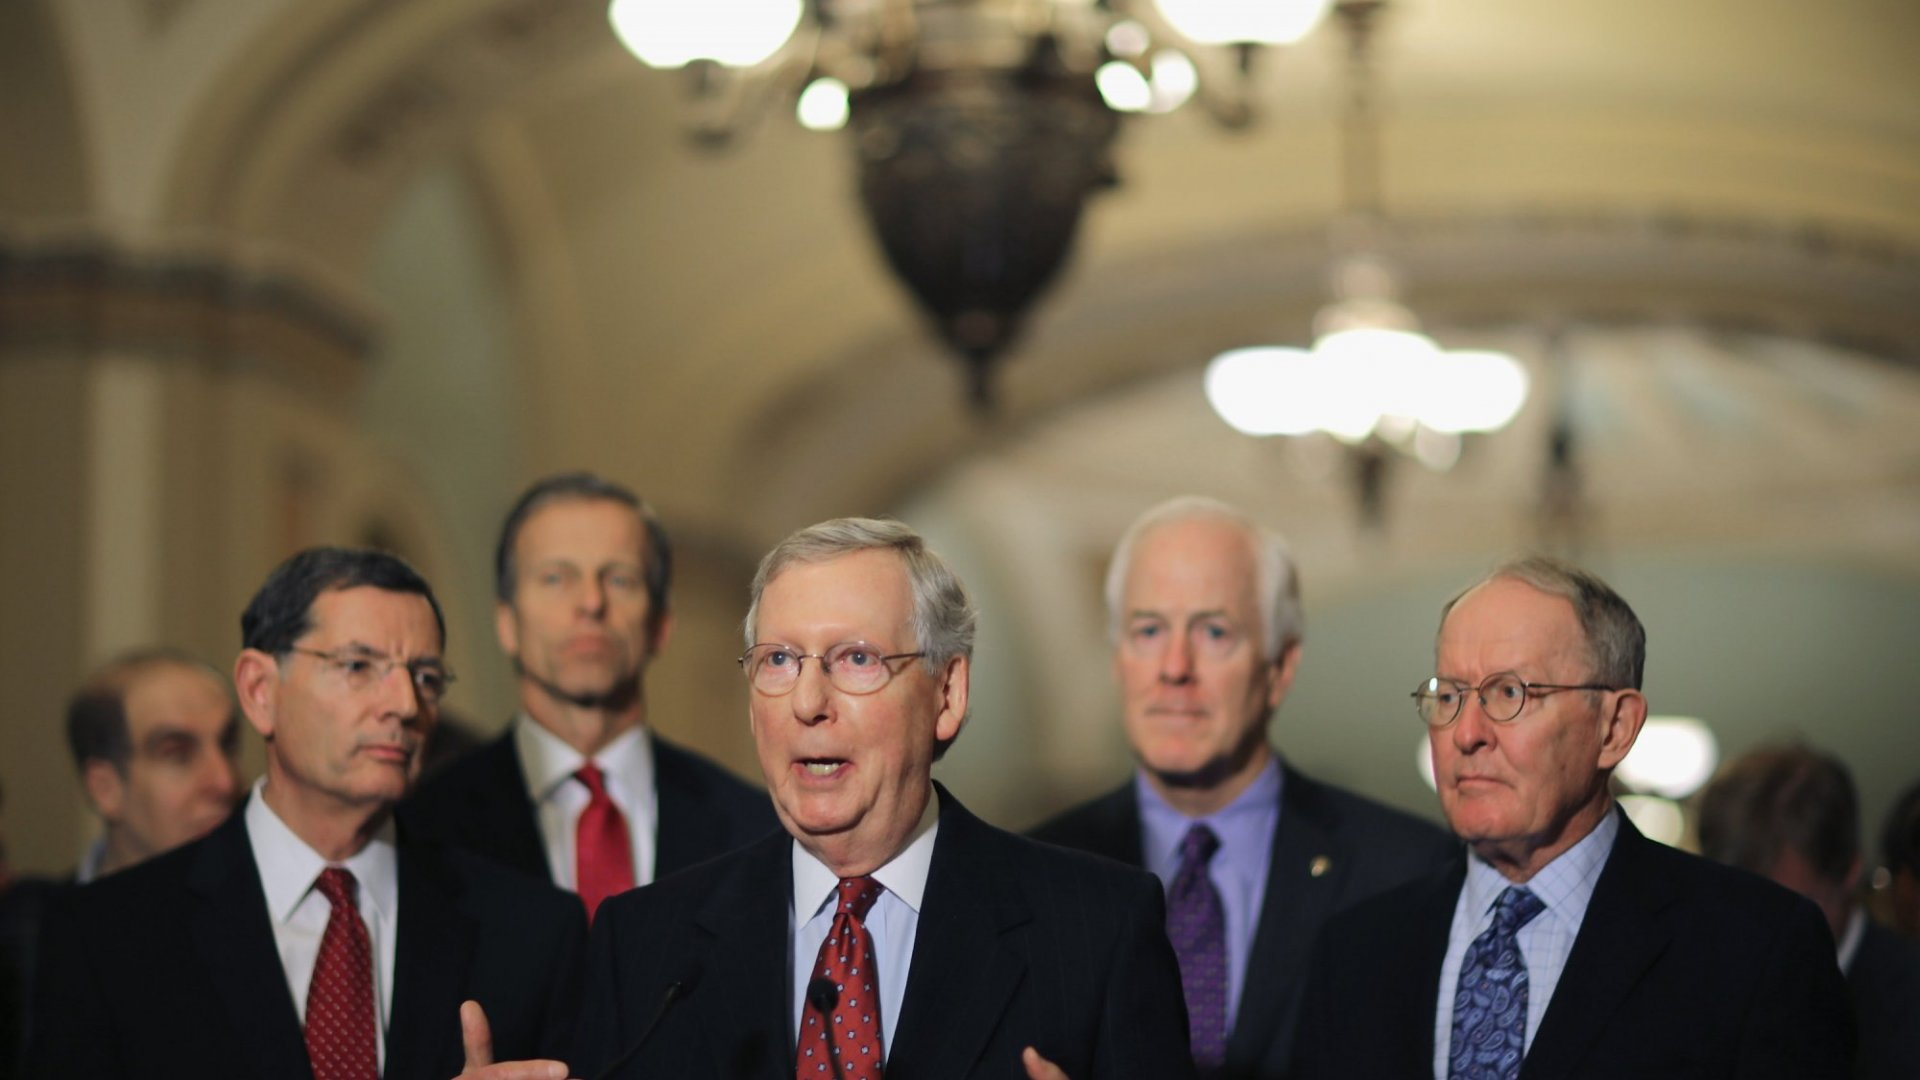 Senate majority leader Mitch McConnell (R.-Ky.) (center, foreground).